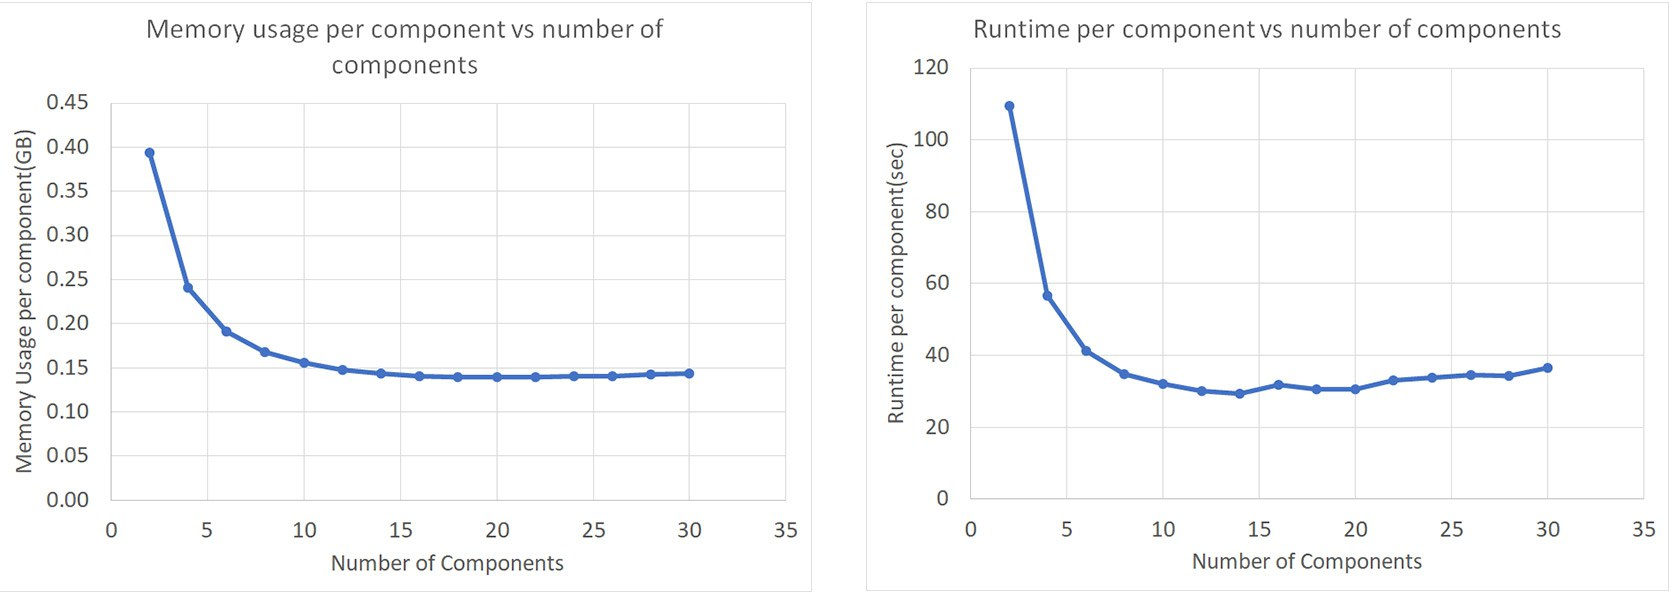 Echelon software compositional formulation runtime memory scaling